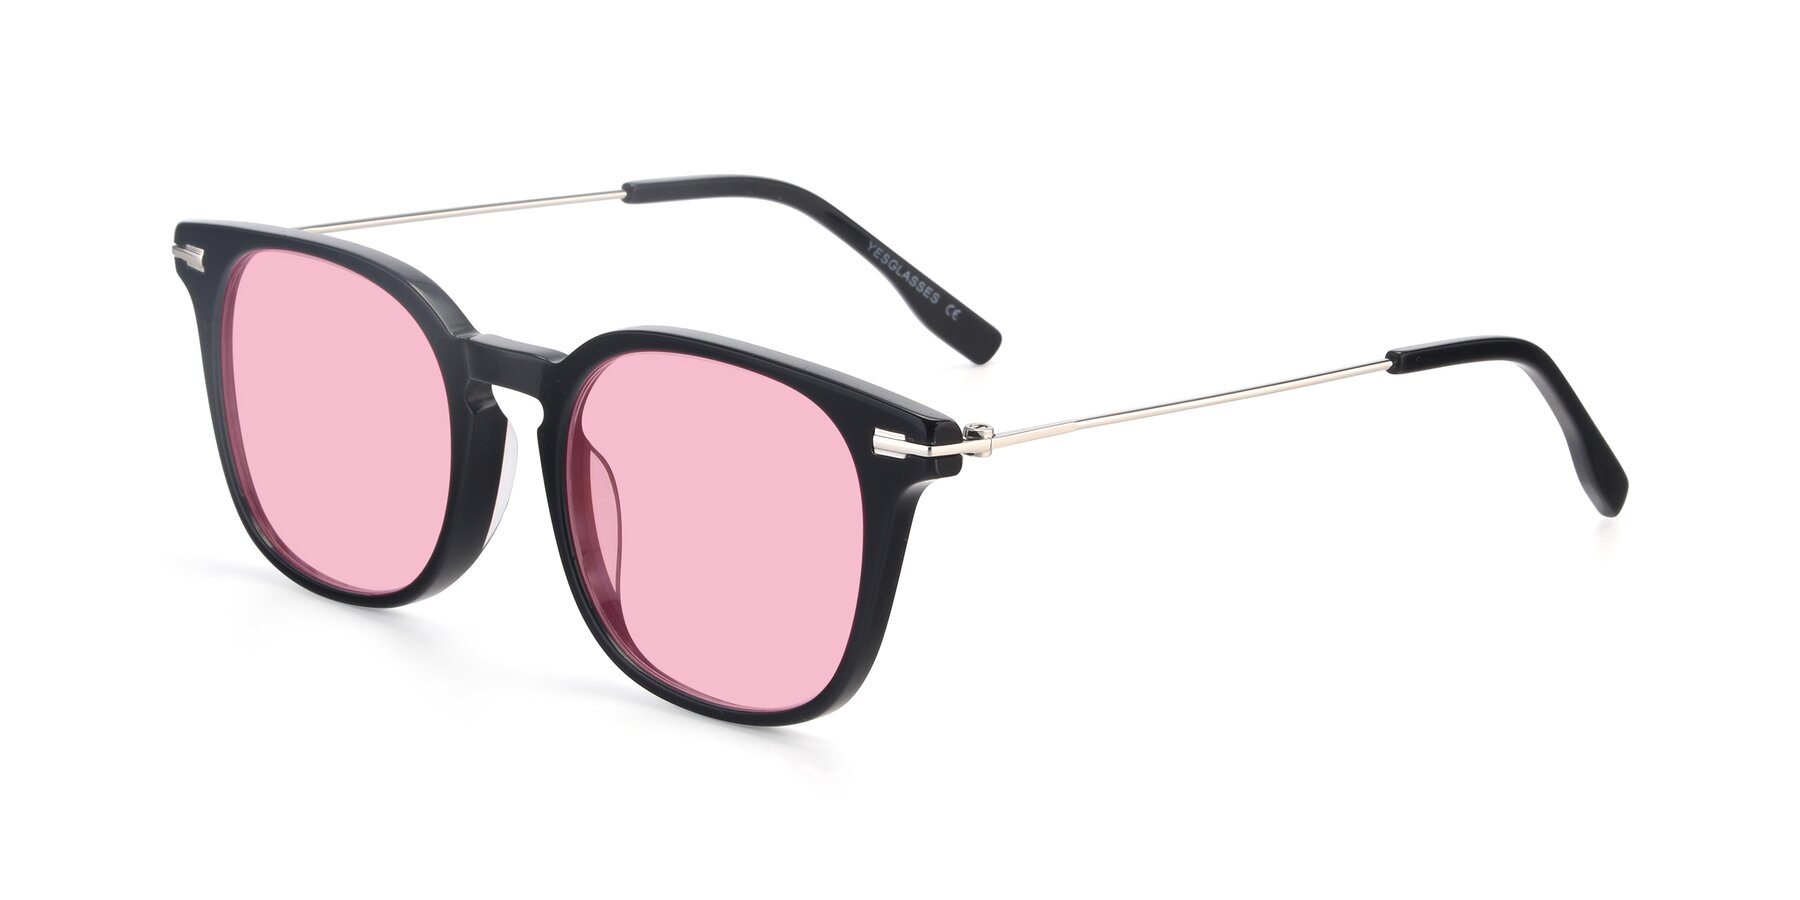 Angle of 17711 in Black with Medium Pink Tinted Lenses